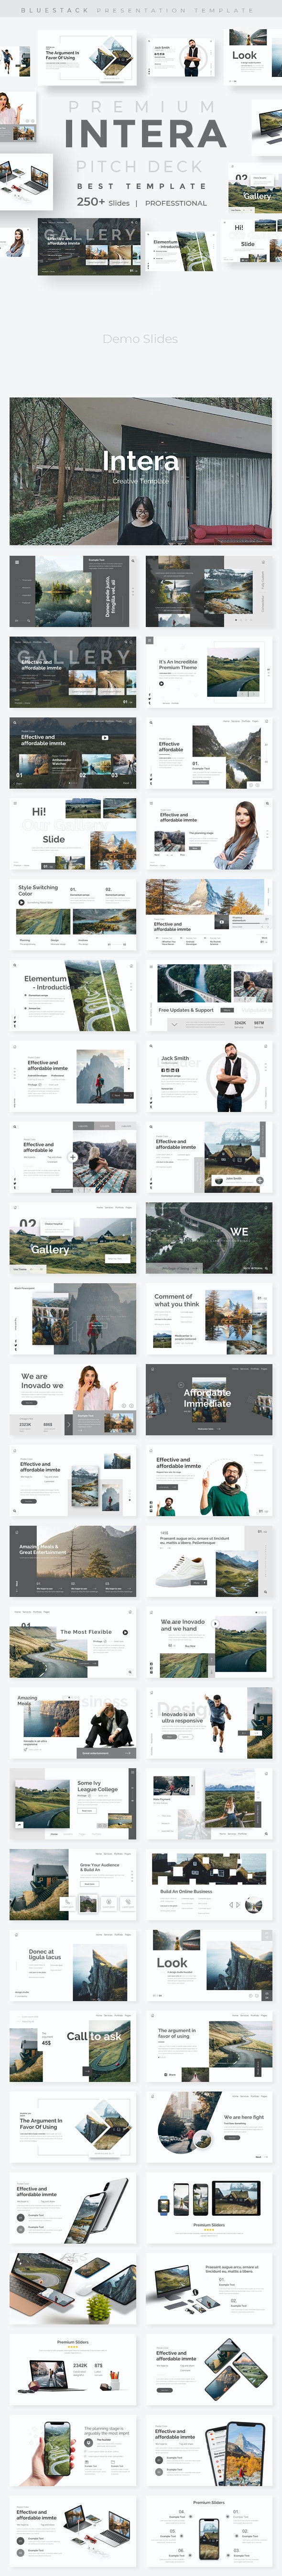 Intera Premium Google Slide Template - Google Slides Presentation Templates